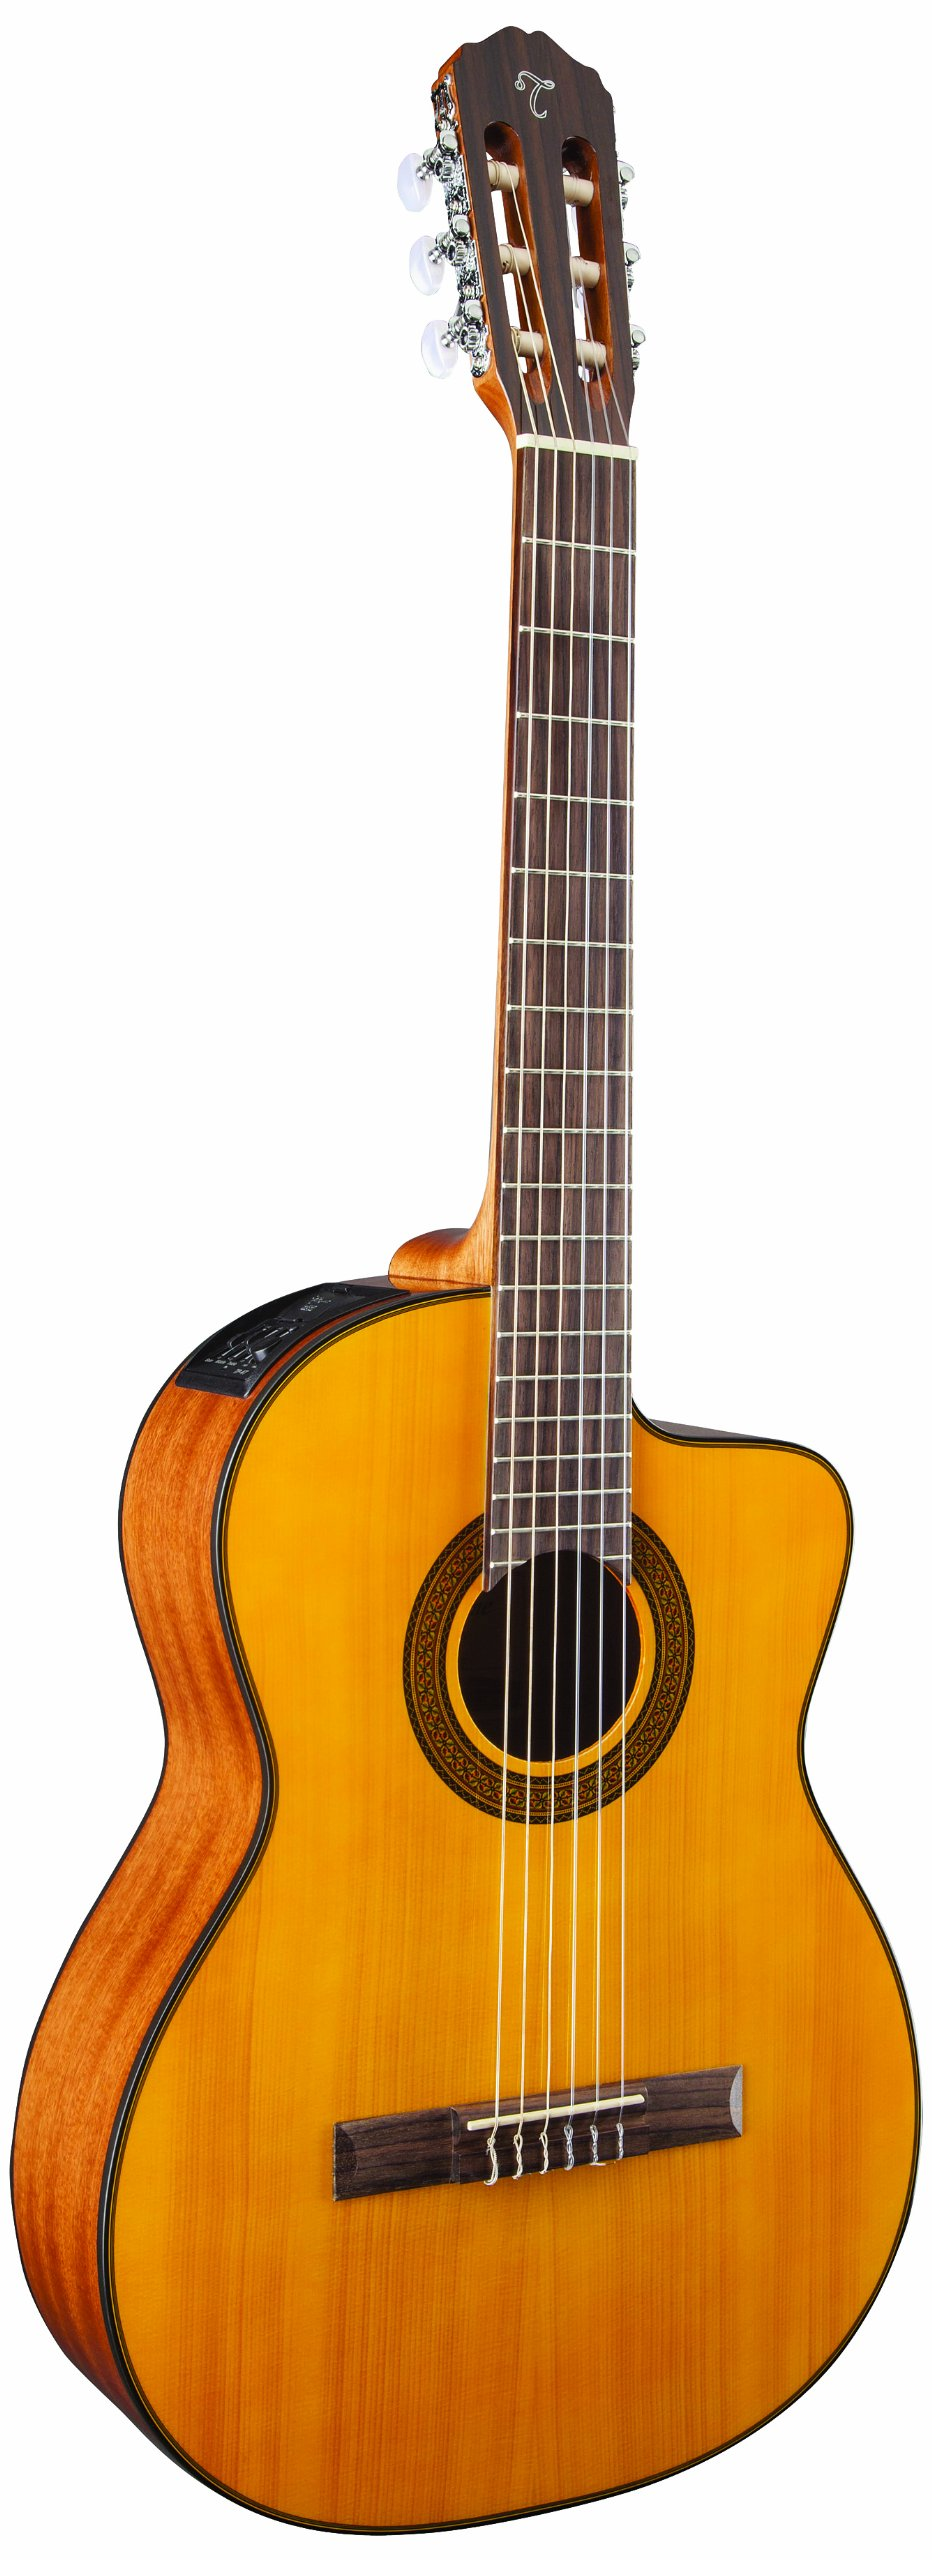 Takamine G Series GC3CE-NAT Acoustic-Electric Classical Cutaway Guitar, Natural by Takamine